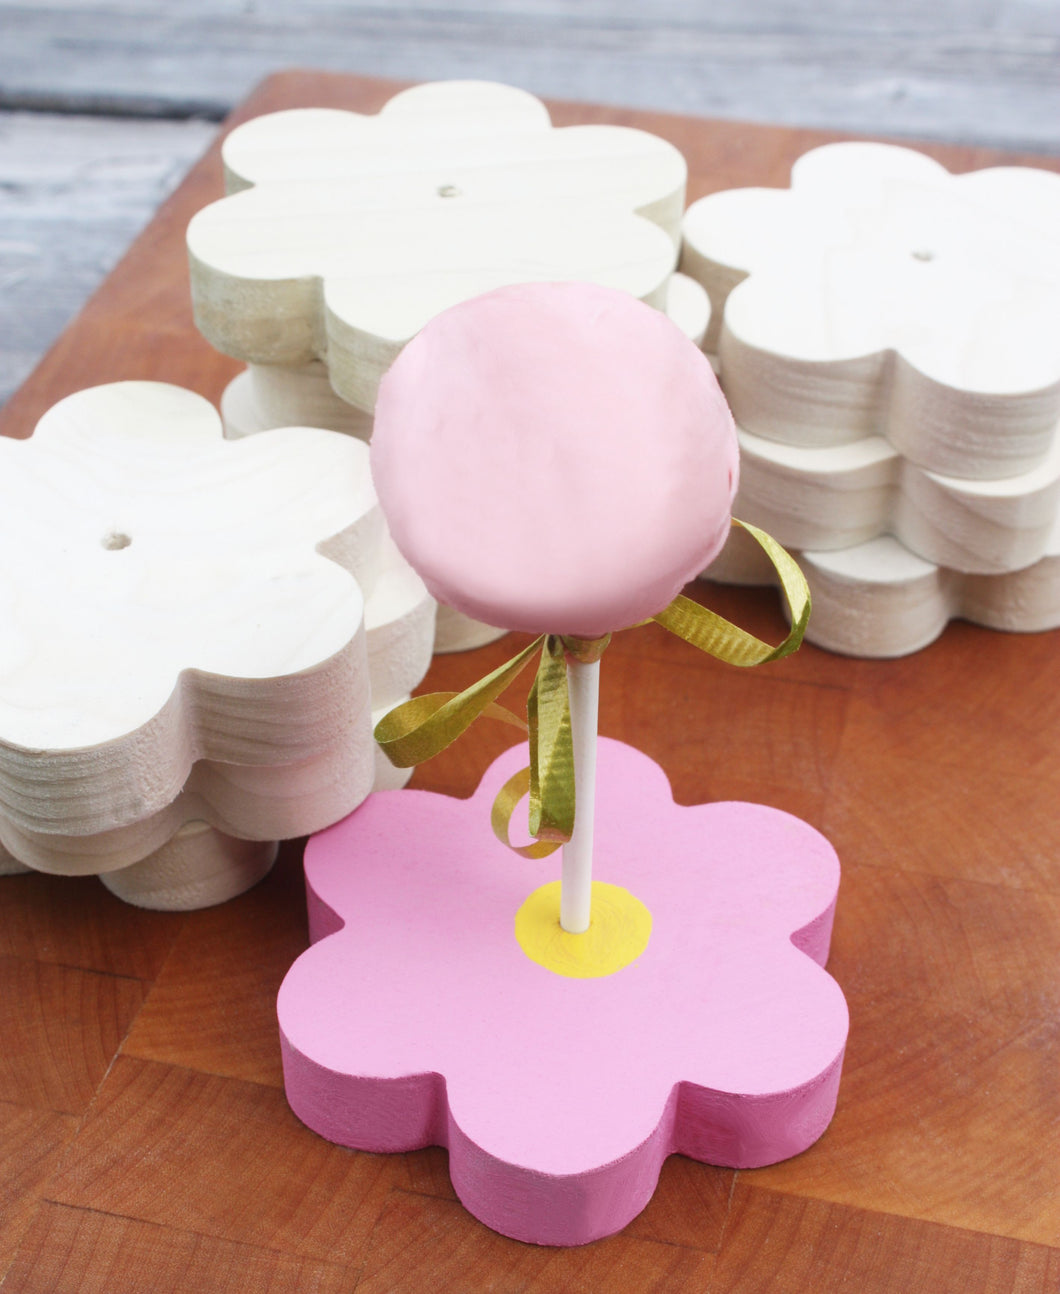 Shop jtwoodworks birthday party flower cake pop stands set of 5 jtwoodworks flower shaped cake pop stands birthday party bridal shower baby shower izmirmasajfo